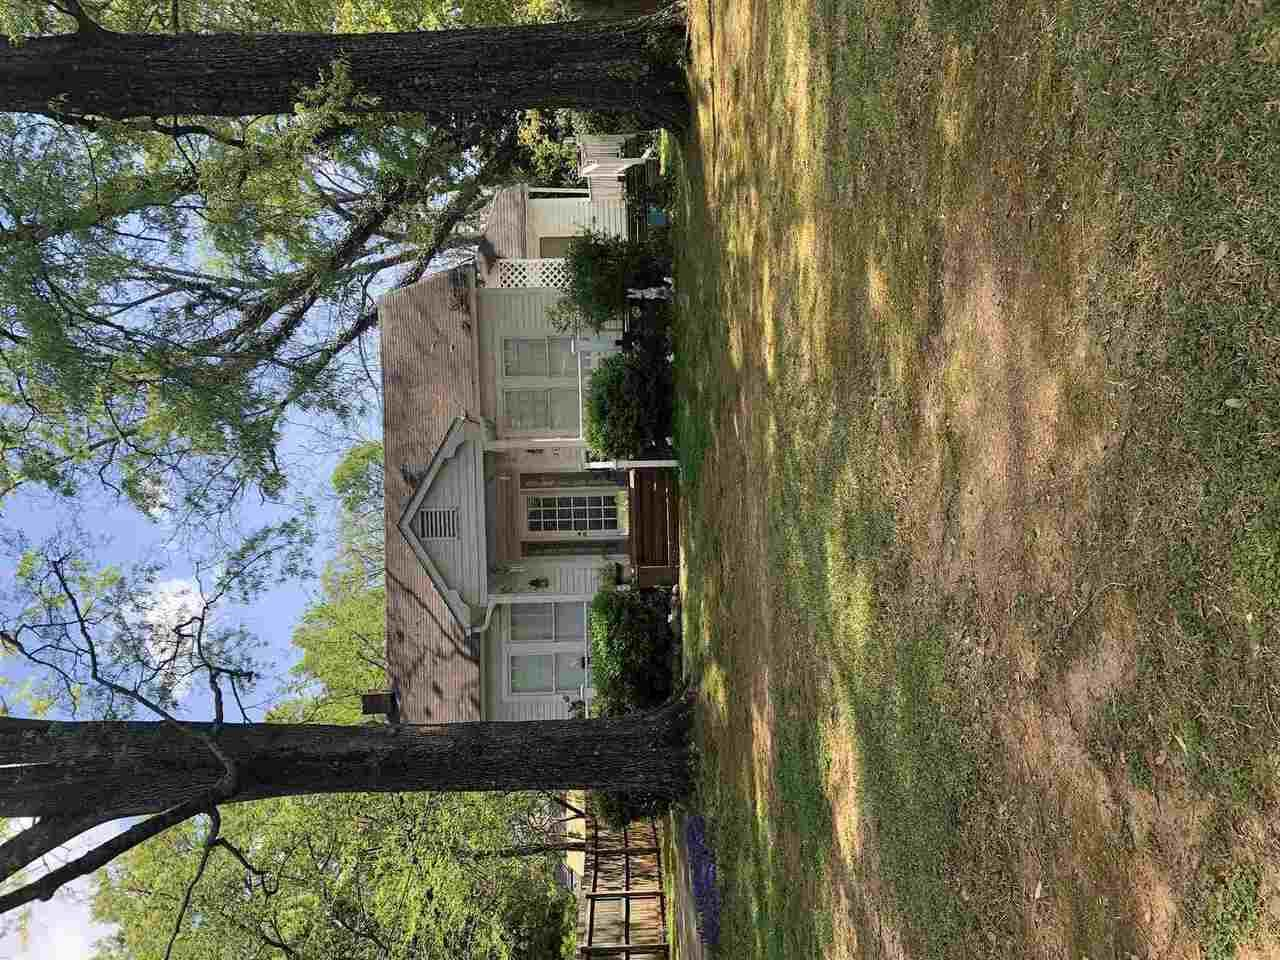 312 S 12Th St, Griffin, GA 30224 - #: 8957639